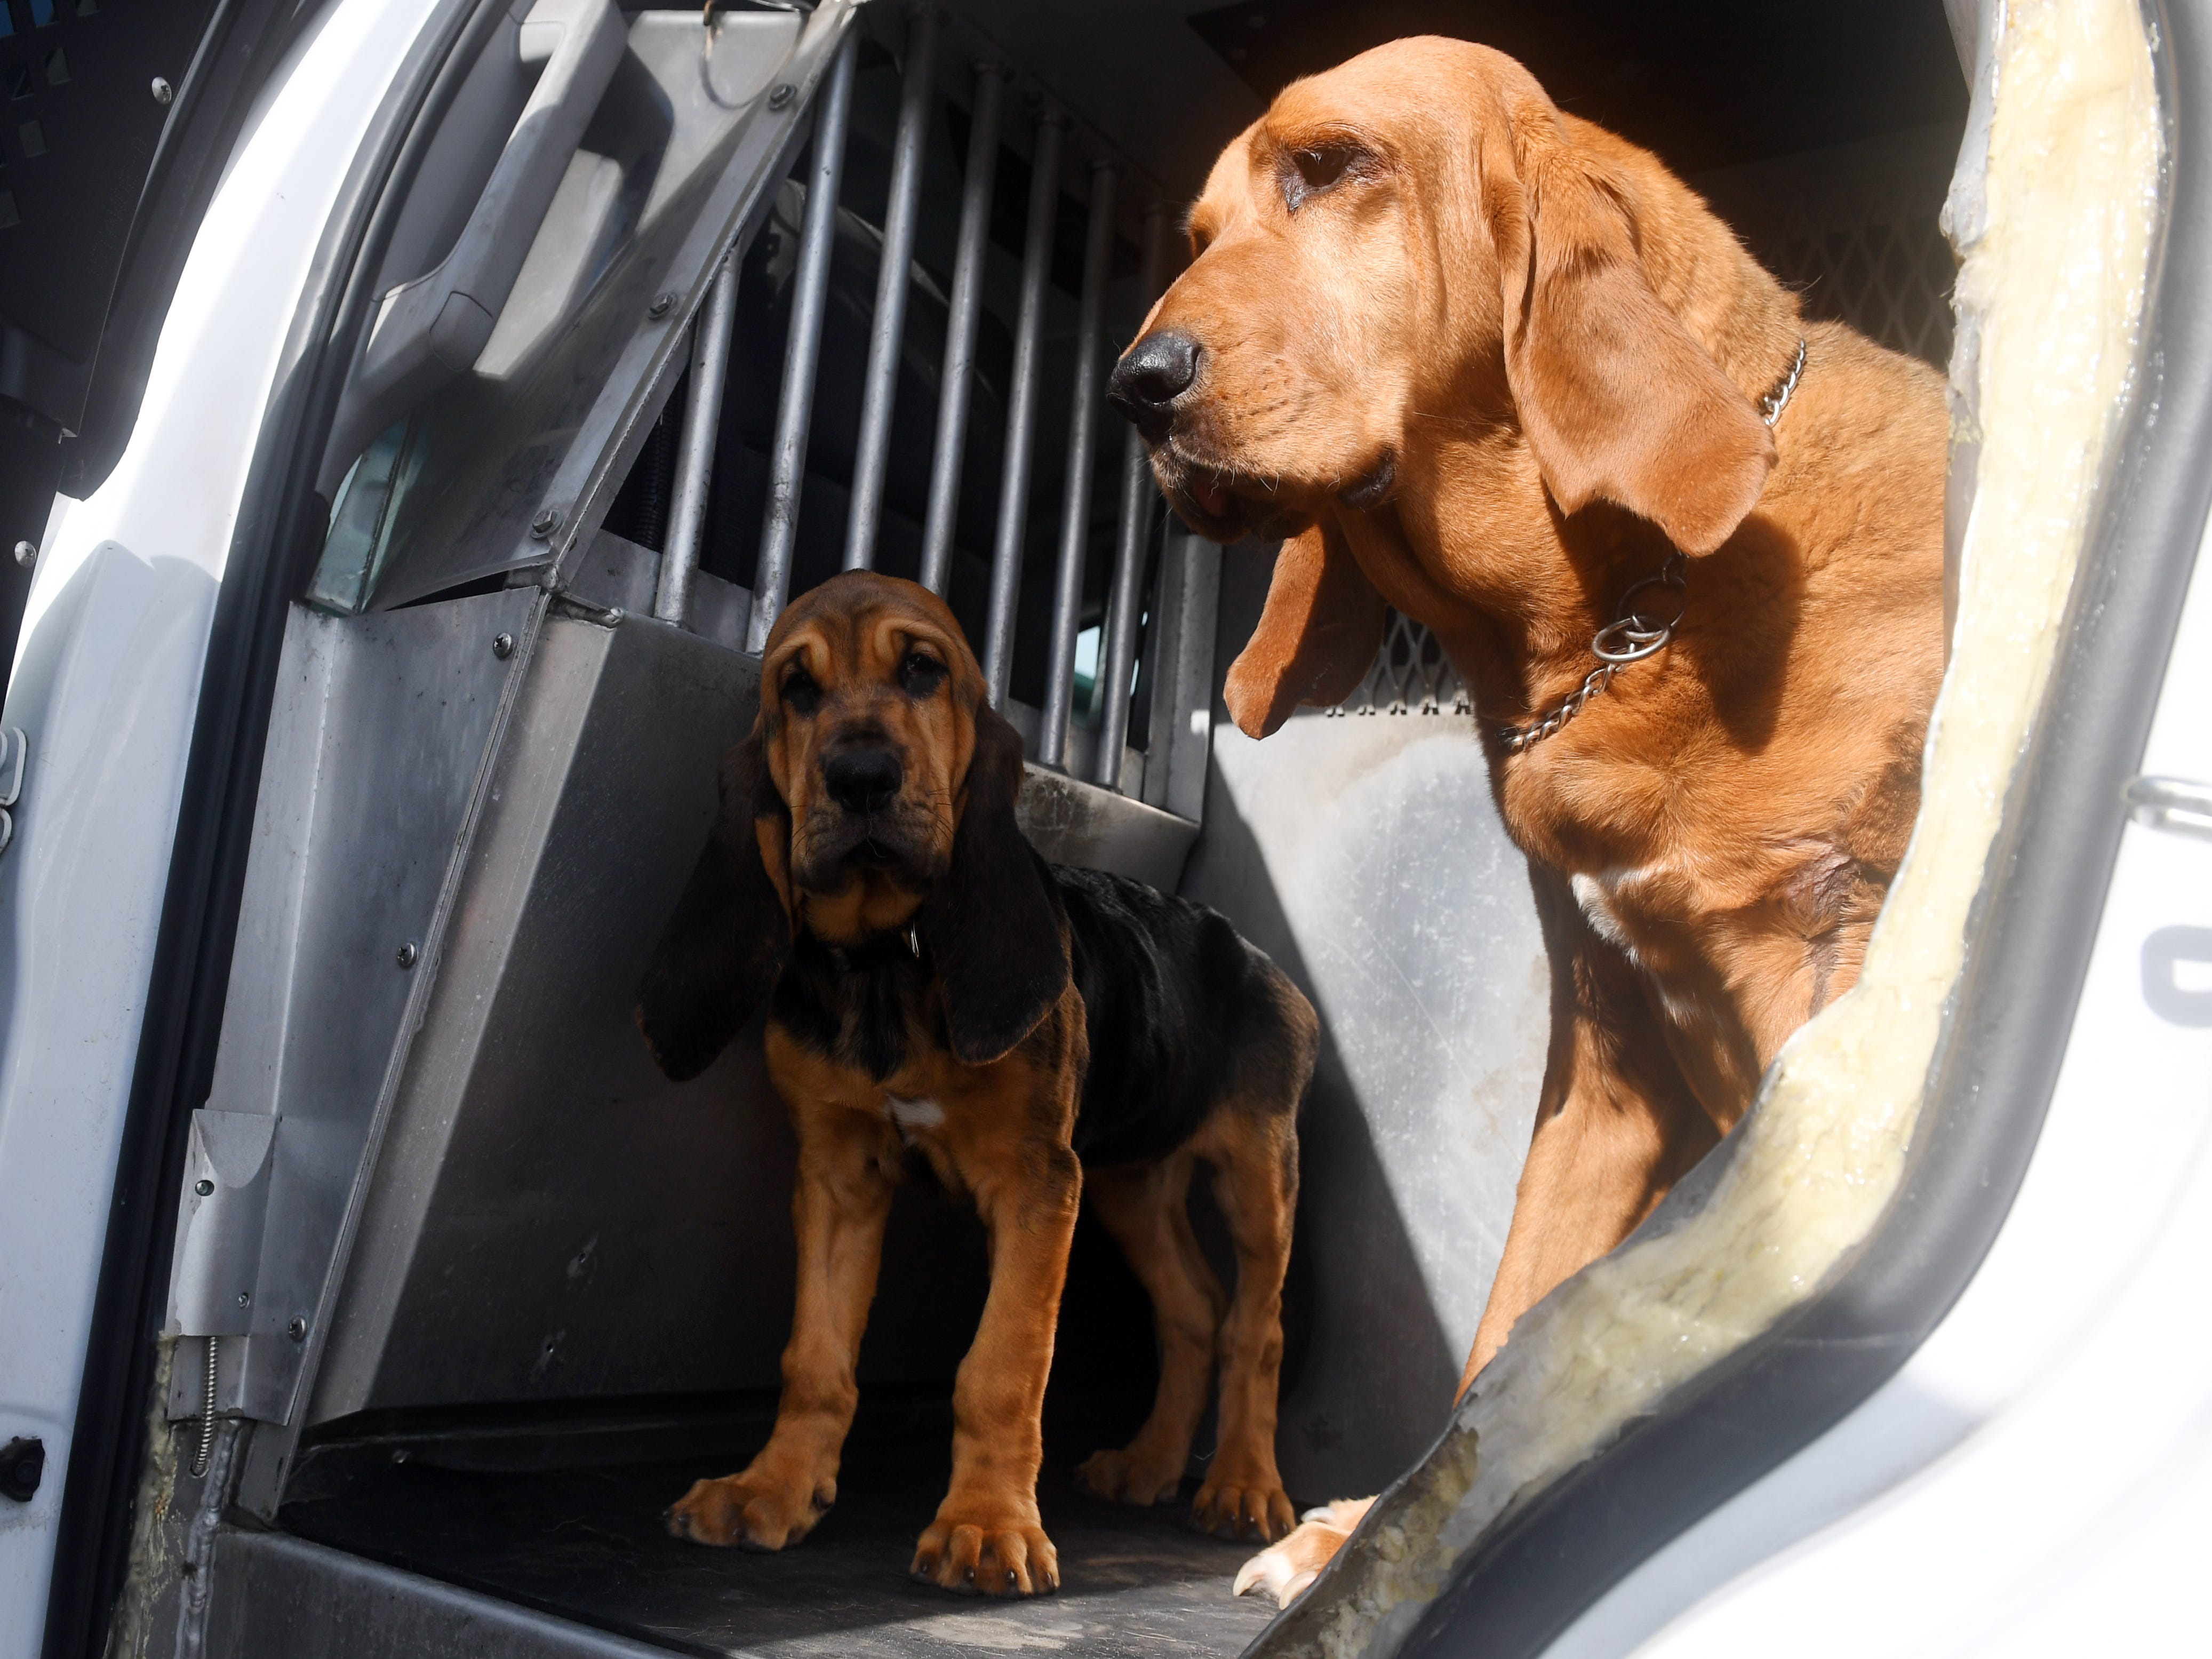 Willow, a 10-month-old bloodhound, is the newest addition to the Indian River County Sheriff's Office K-9 unit and will be trained as a search and rescue dog. Willow will be replacing Dixie, a 12-year-old dog, who will soon retire.